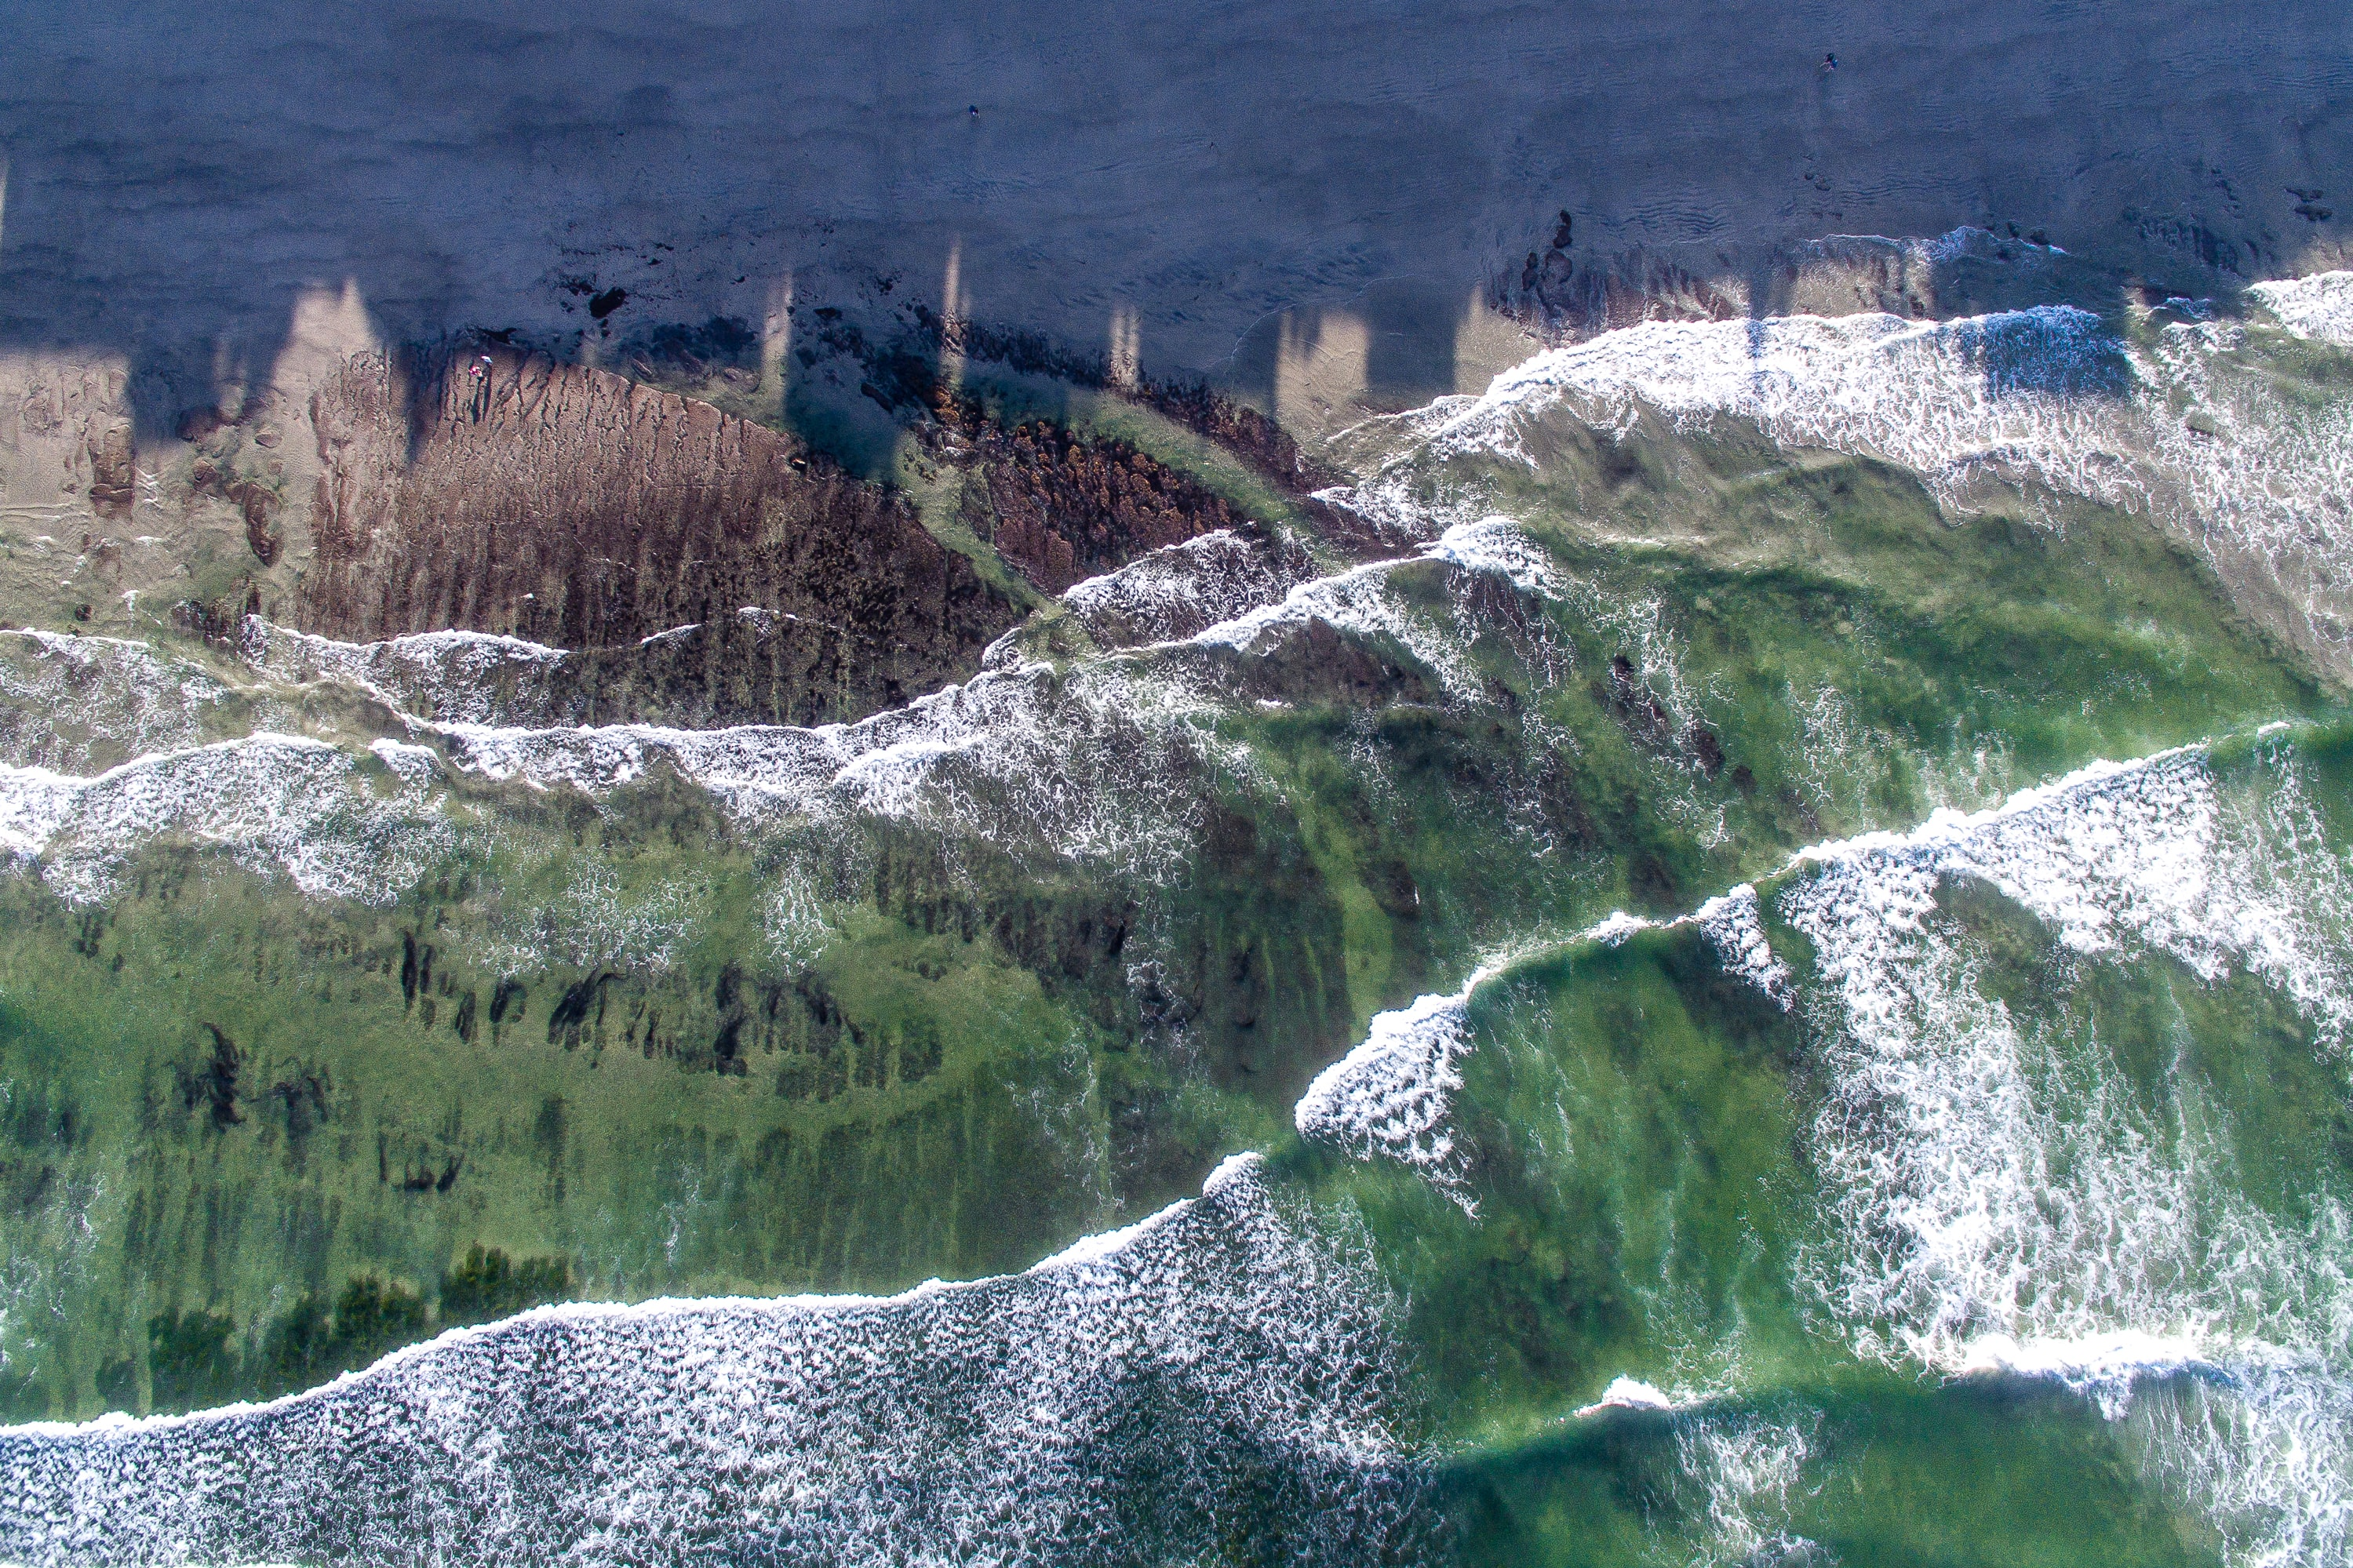 Drone view of ocean waves going across colorful terrain at Beacon's Beach